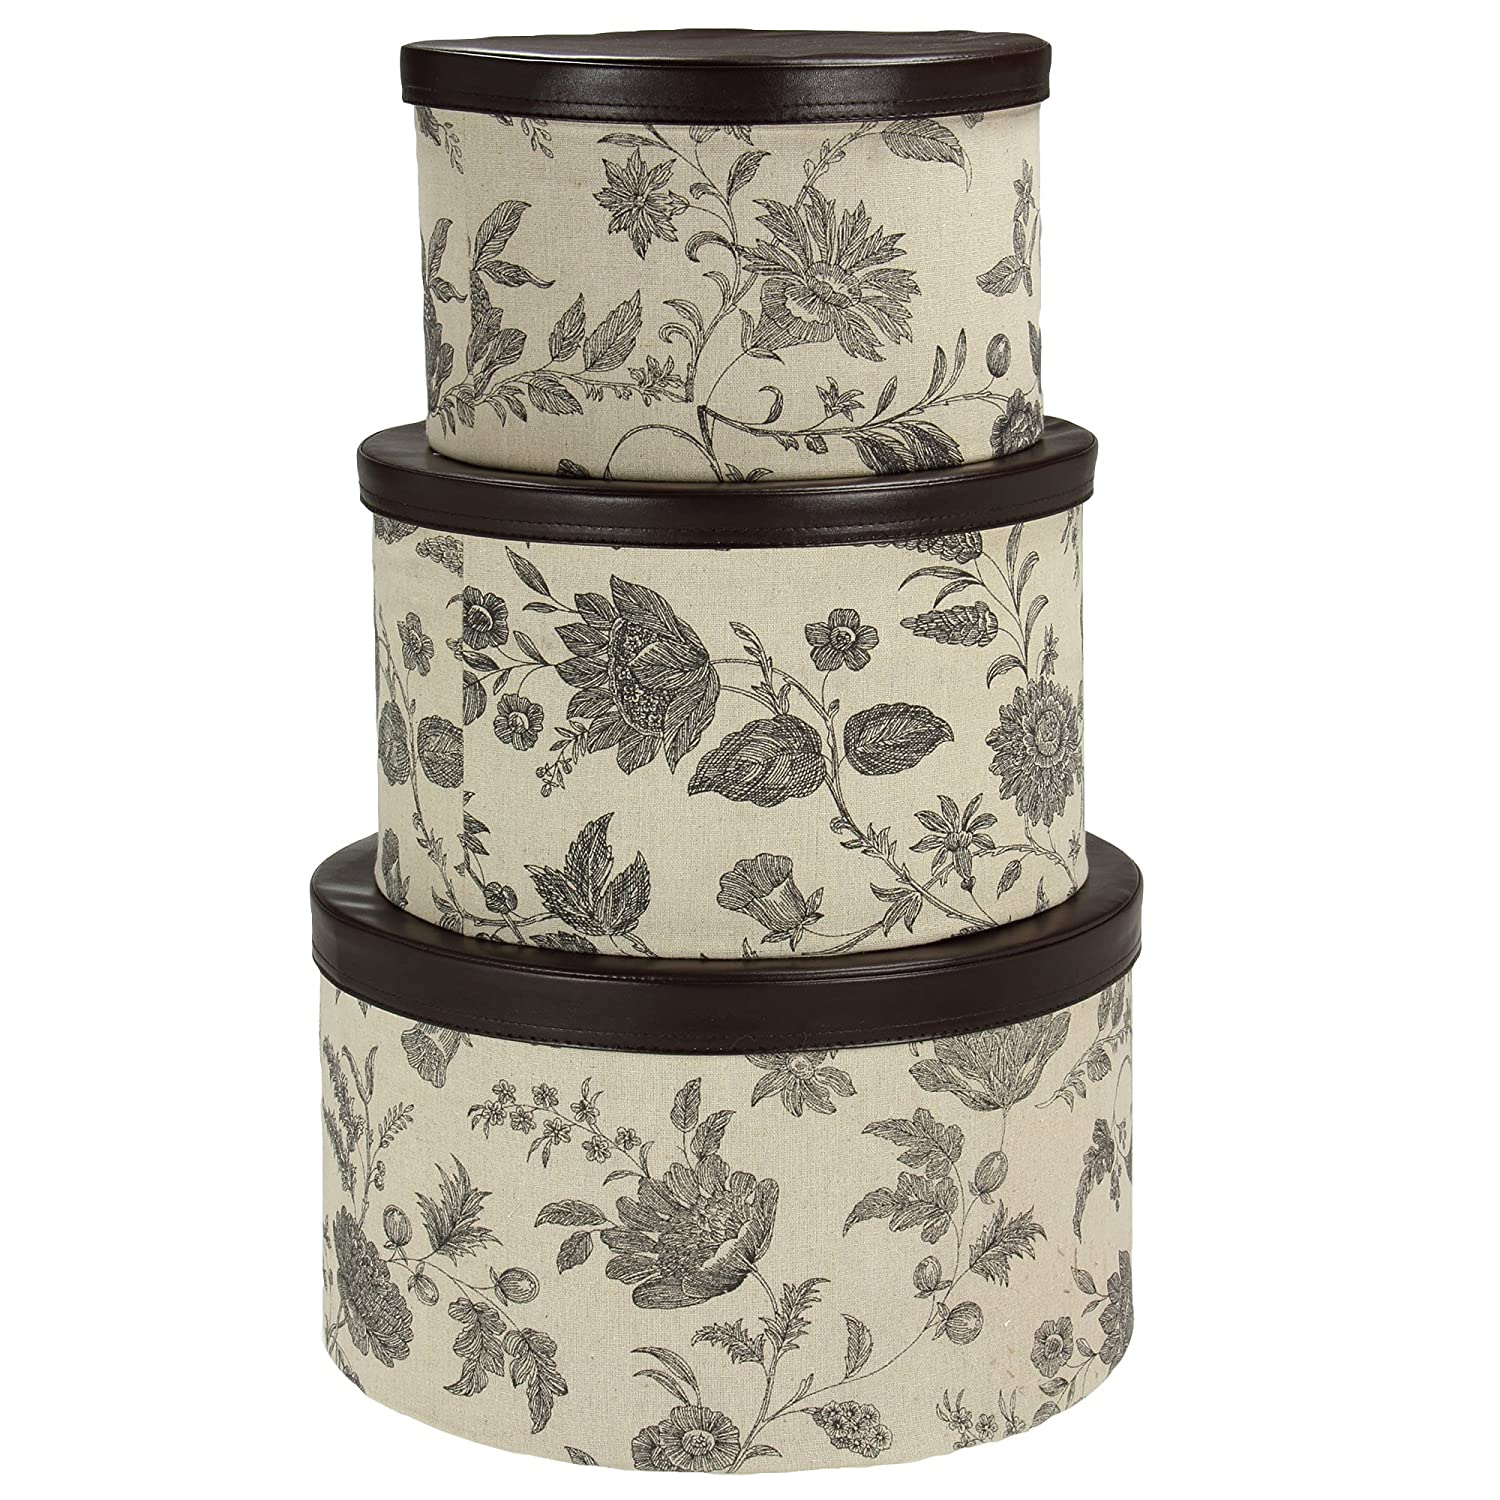 Household Essentials 3-Piece Hat Box Set with Faux Leather Lids, Floral Pattern 619-1